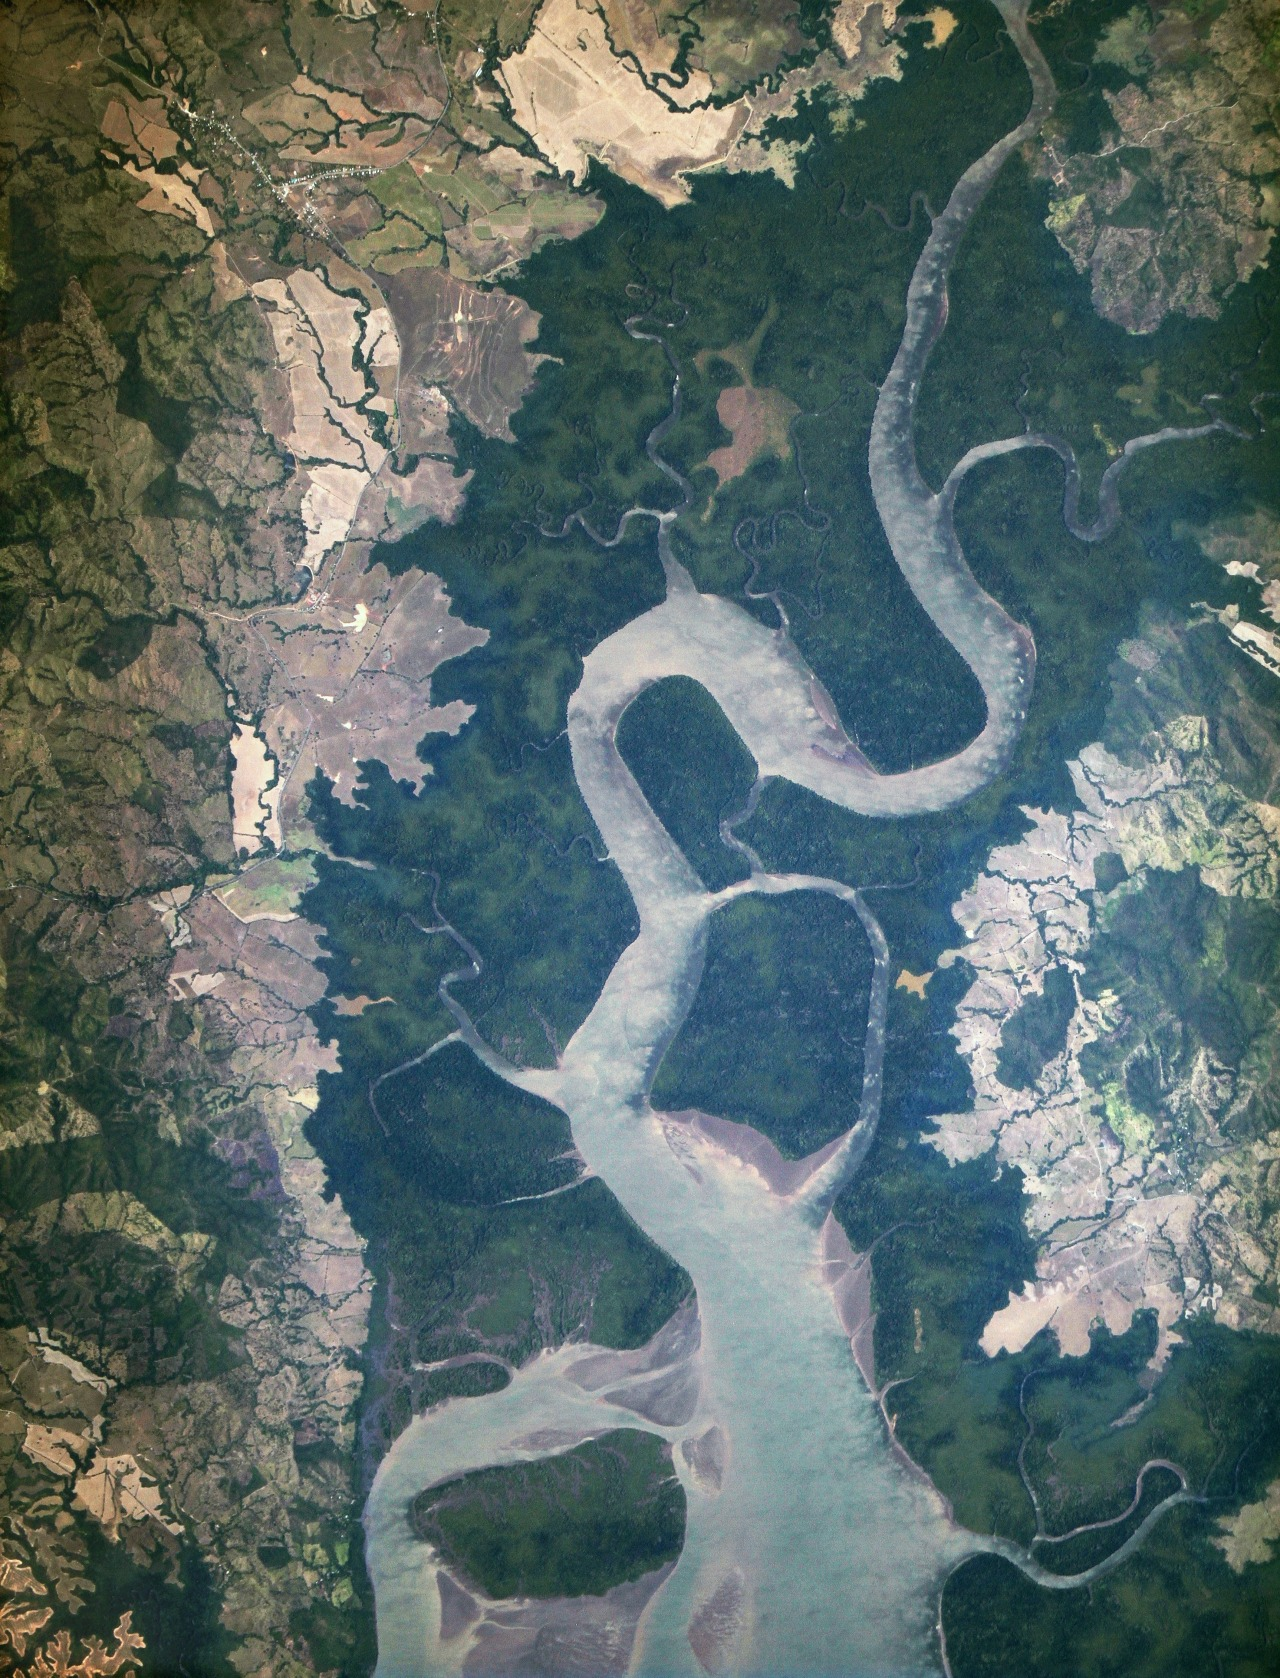 "New ISS Eyes See Rio San Pablo In January 2013, a new Earth-observing instrument was installed on the International Space Station (ISS). ISERV Pathfinder consists of a commercial camera, a telescope, and a pointing system, all positioned to look through the Earth-facing window of ISS's Destiny module. ISERV Pathfinder is intended as an engineering exercise, with the long-term goal of developing a system for providing imagery to developing nations as they monitor natural disasters and environmental concerns. The image above is the ""first light"" from the new ISERV camera system, taken at 1:44 p.m. local time on February 16, 2013. It shows the Rio San Pablo as it empties into the Golfo de Montijo in Veraguas, Panama. It is an ecological transition zone, changing from agriculture and pastures to mangrove forests, swamps, and estuary systems. The area has been designated a protected area by the National Environmental Authority (ANAM) of Panama and is listed as a ""wetland of international importance"" under the Ramsar Convention. (Note that the image is rotated so that north is to the upper right.) ""ISERV's full potential is yet to be seen, but we hope it will really make a difference in people's lives,"" said principal investigator Burgess Howell of NASA's Marshall Space Flight Center. ""For example, if an earthen dam gives way in Bhutan, we want to be able to show officials where the bridge is out or where a road is washed out or a power substation is inundated. This kind of information is critical to focus and speed rescue efforts."""